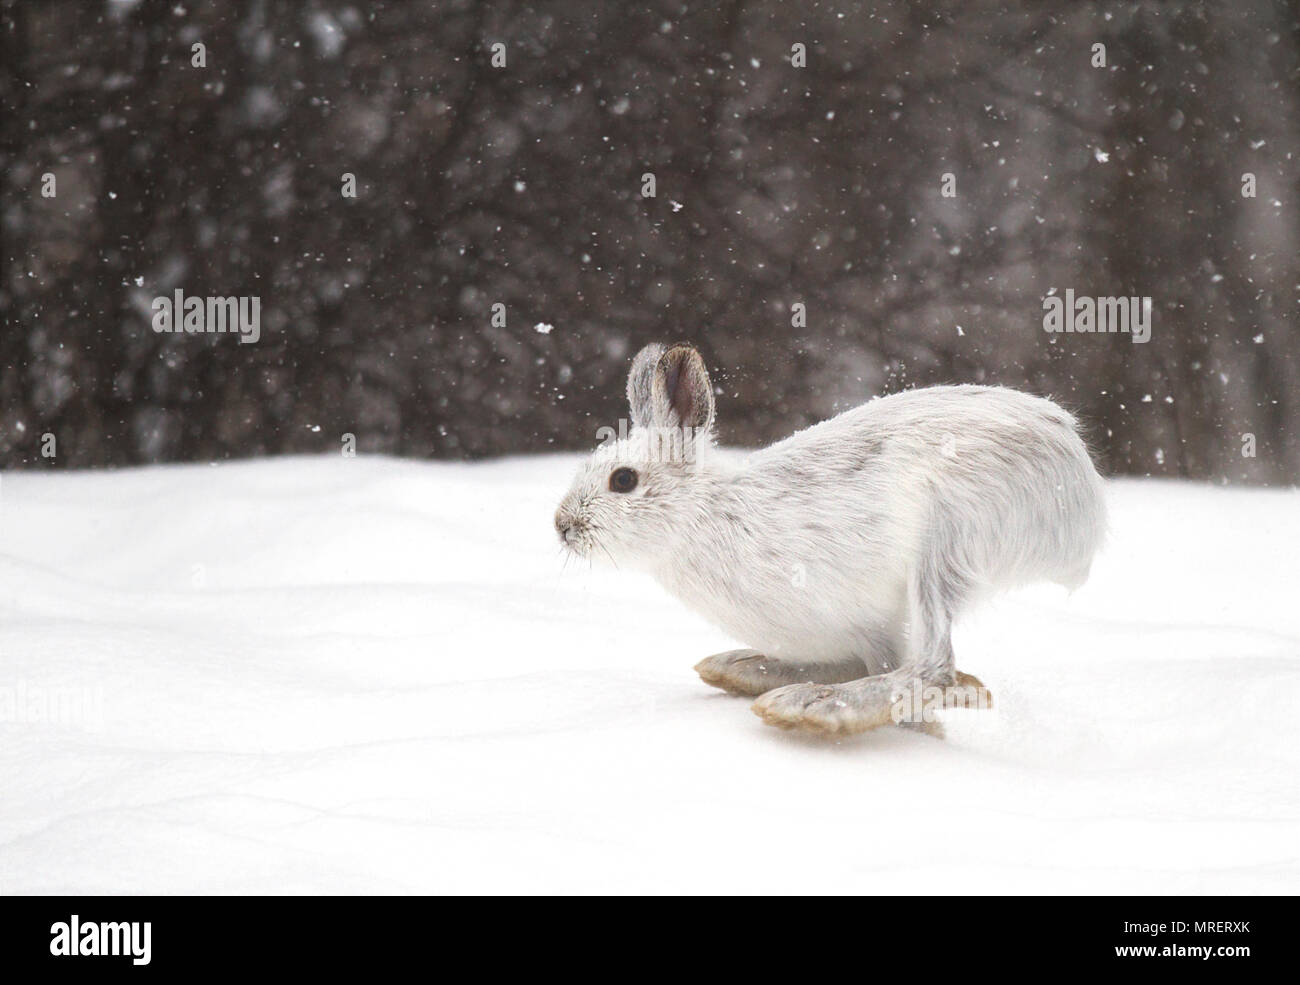 Snowshoe hare or Varying hare (Lepus americanus) running in the snow with a white coat in winter in Canada - Stock Image